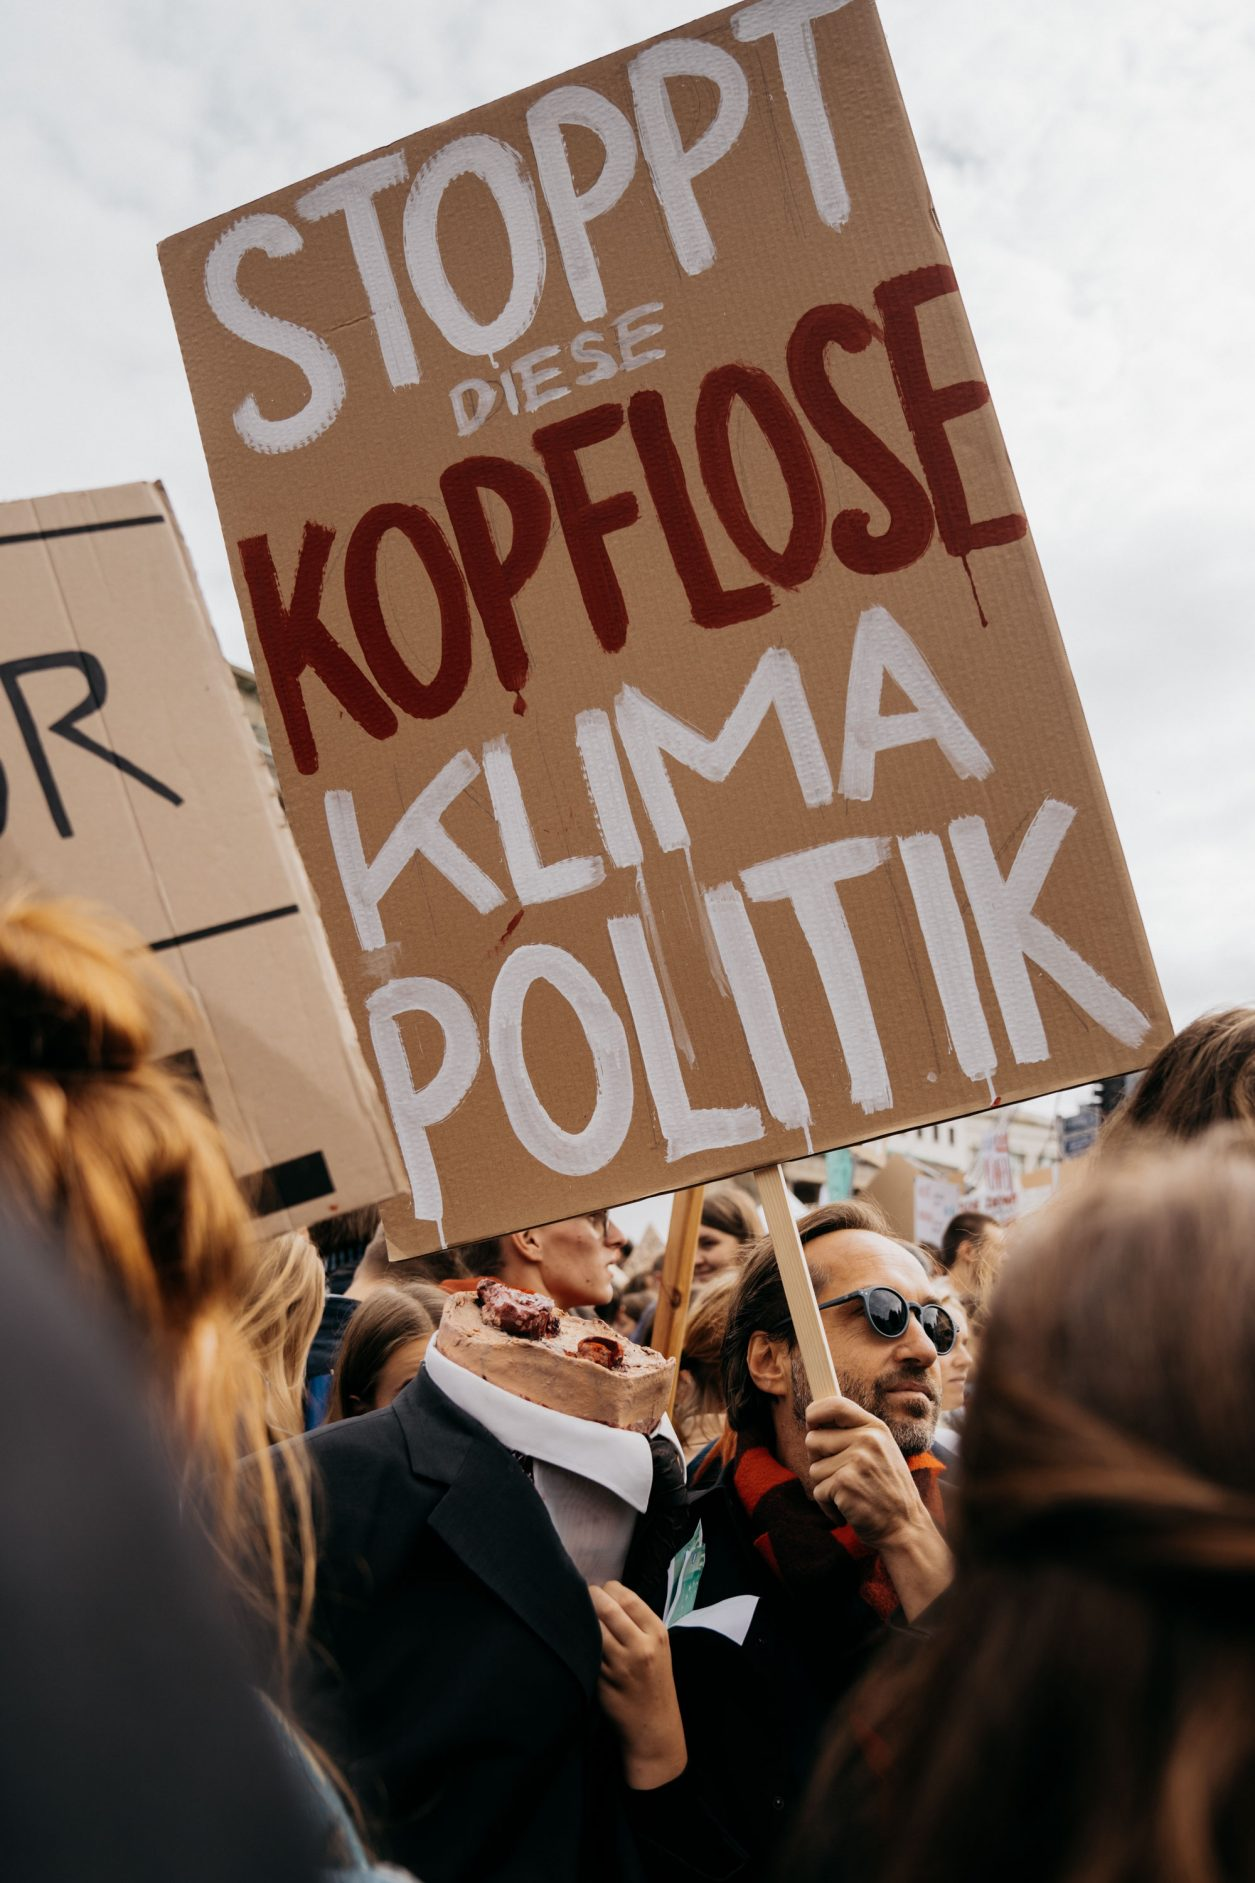 Fridays for Future Demonstration am 20.09.2019 | Klimawandel | Streik | Plakate | Berlin | Klimaschutzpaket | Pariser Klimaabkommen | Politik